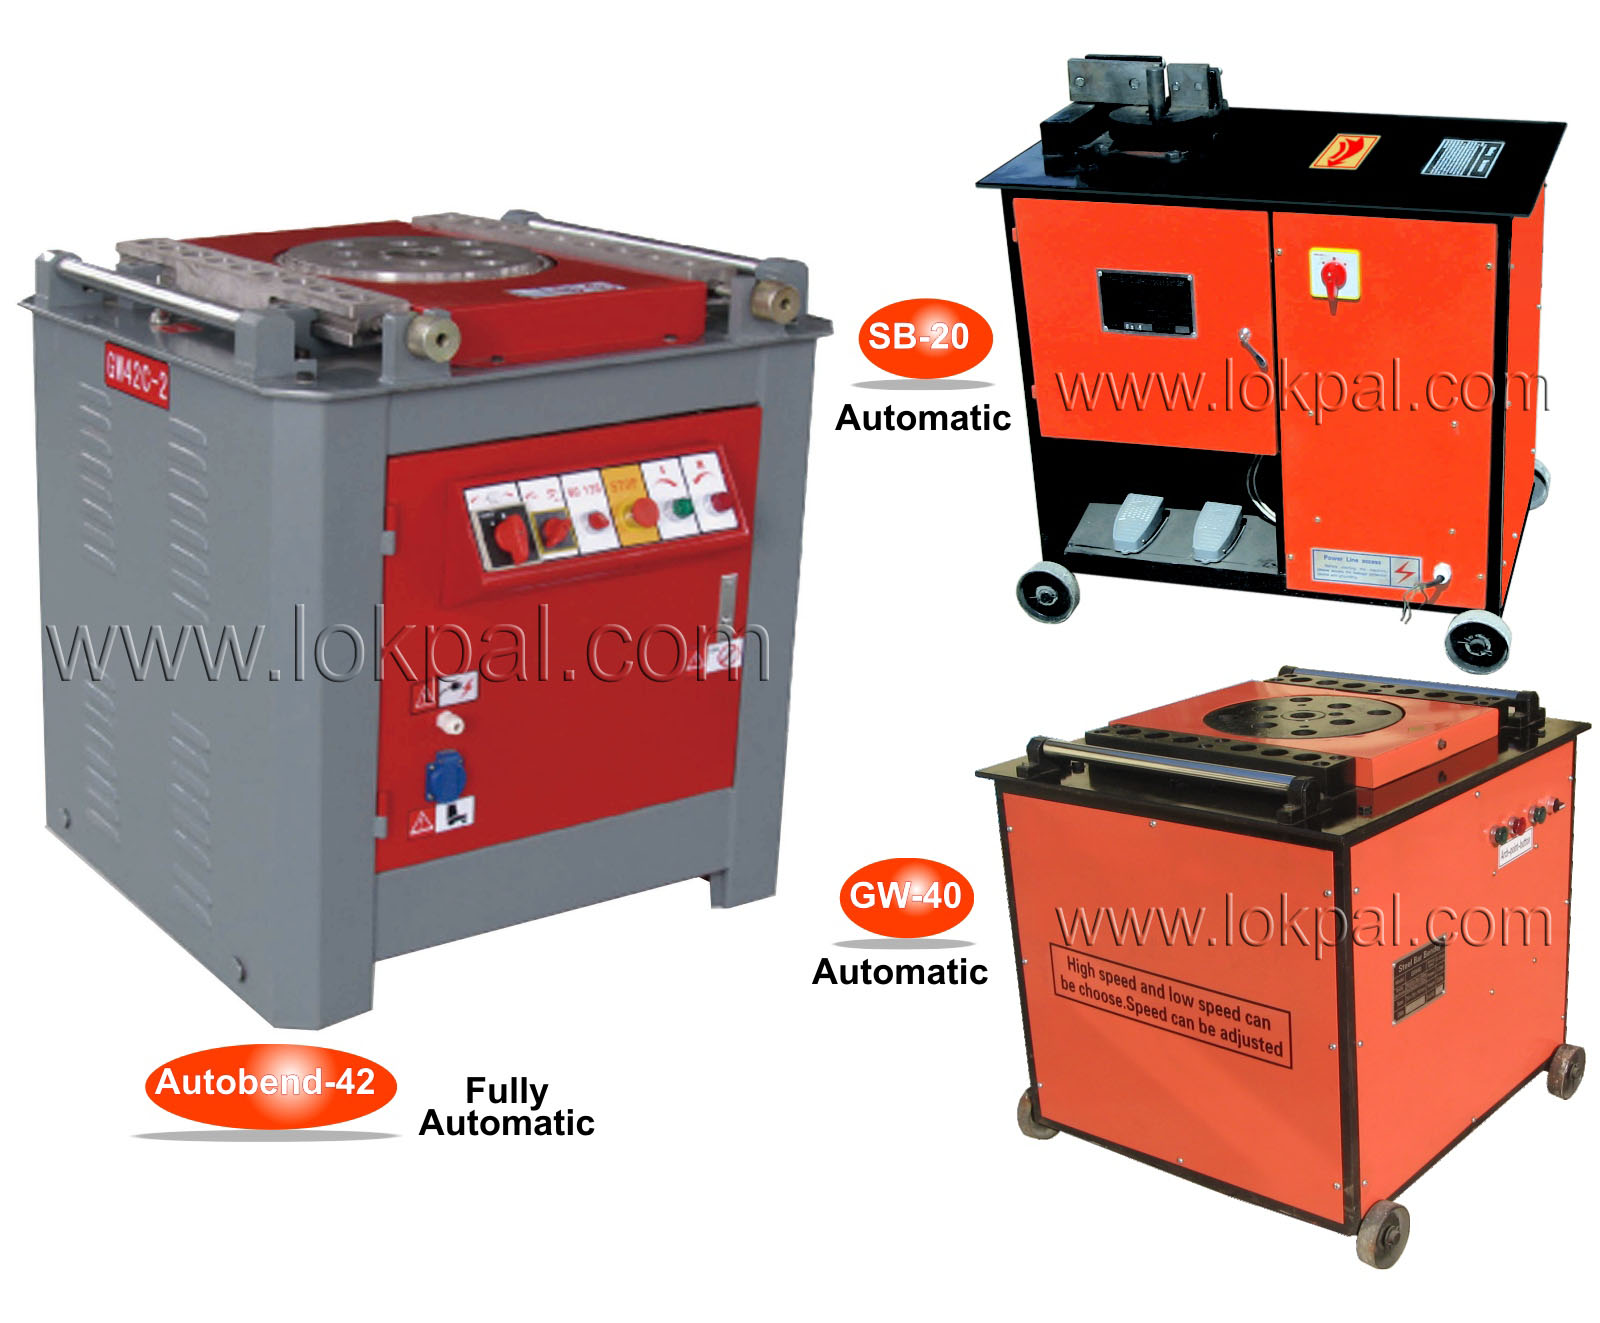 Bar Bender, Bar Bender Wholesaler, Bar Cutter Machine, Bar Bender Manufacturer, Bar Bender Machine Supplier, India